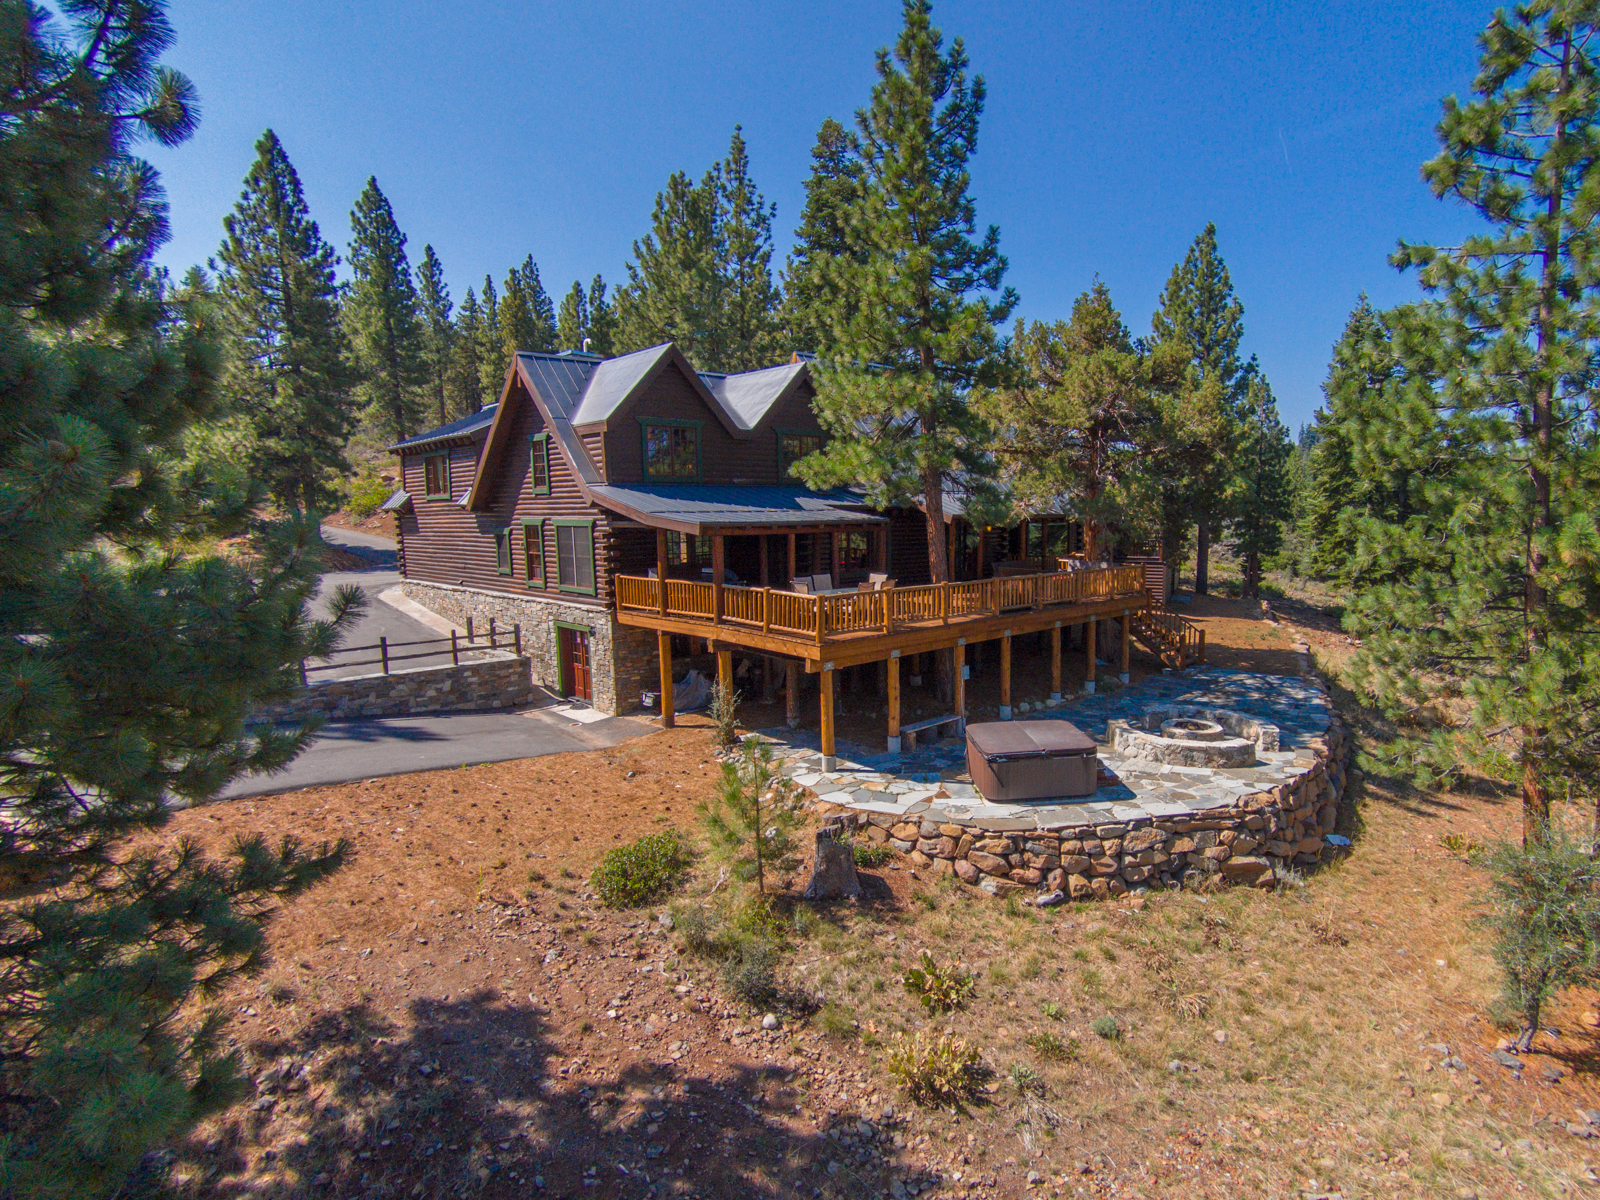 Single Family Home for Sale at 13834 Martis Peak Road Truckee, California 96161 United States